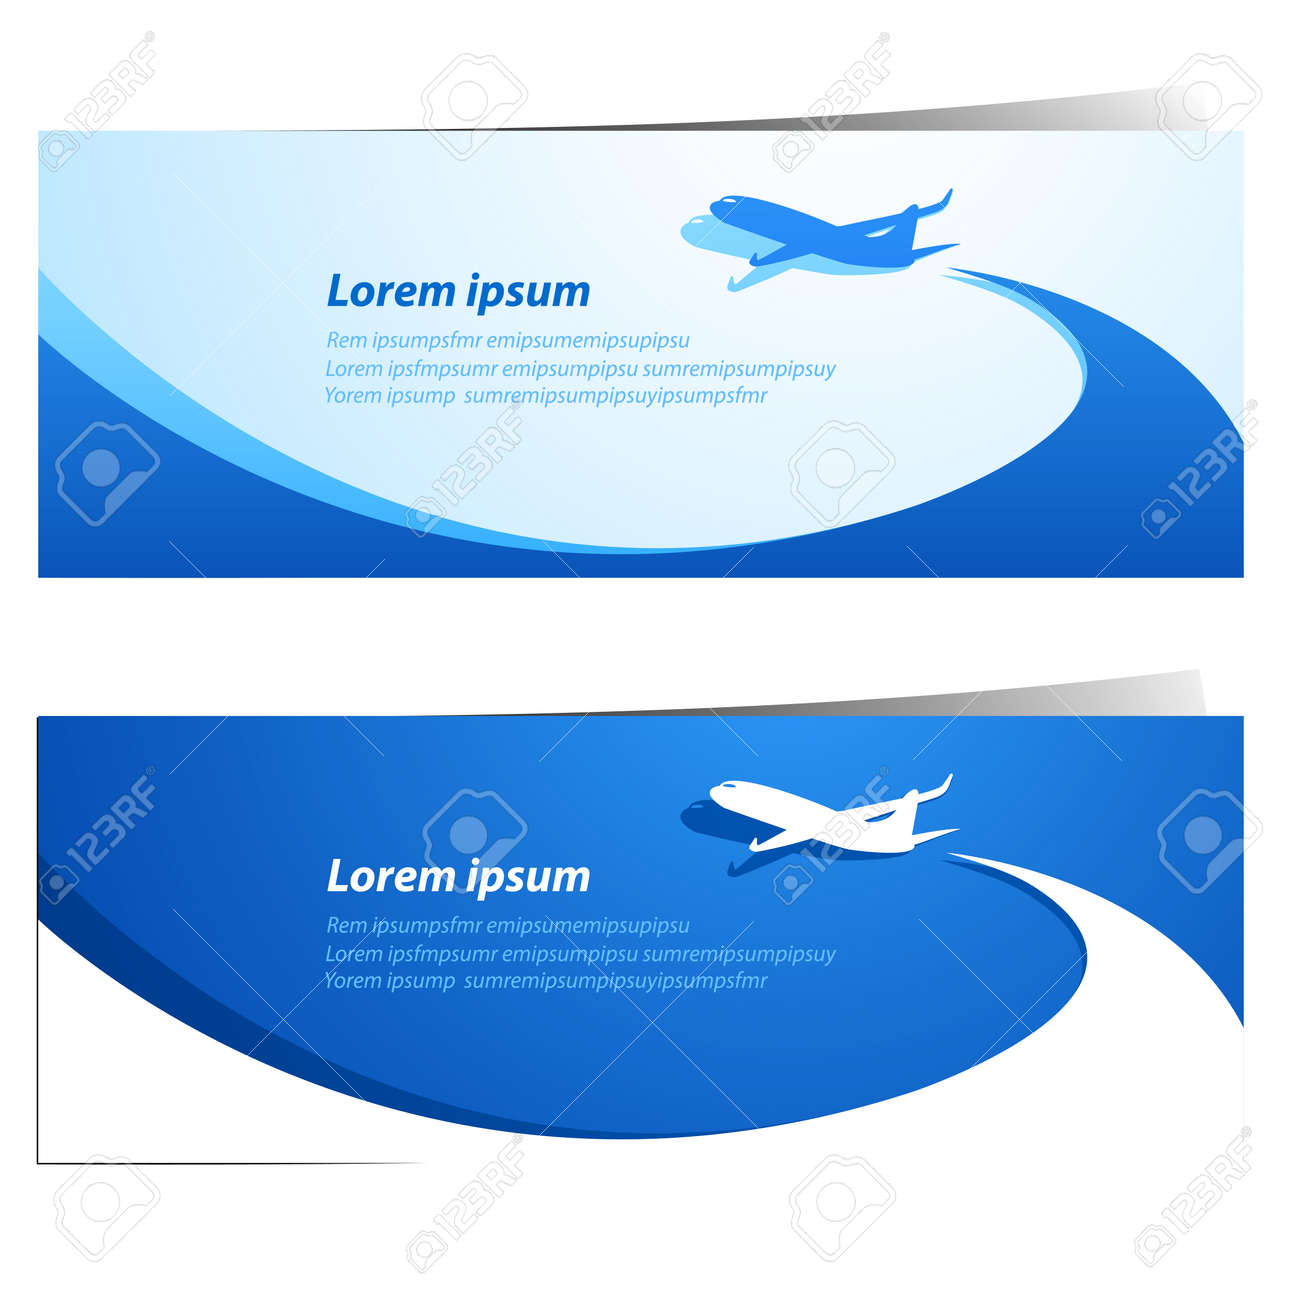 Airplane travel banners vector illustration Stock Vector - 30133984